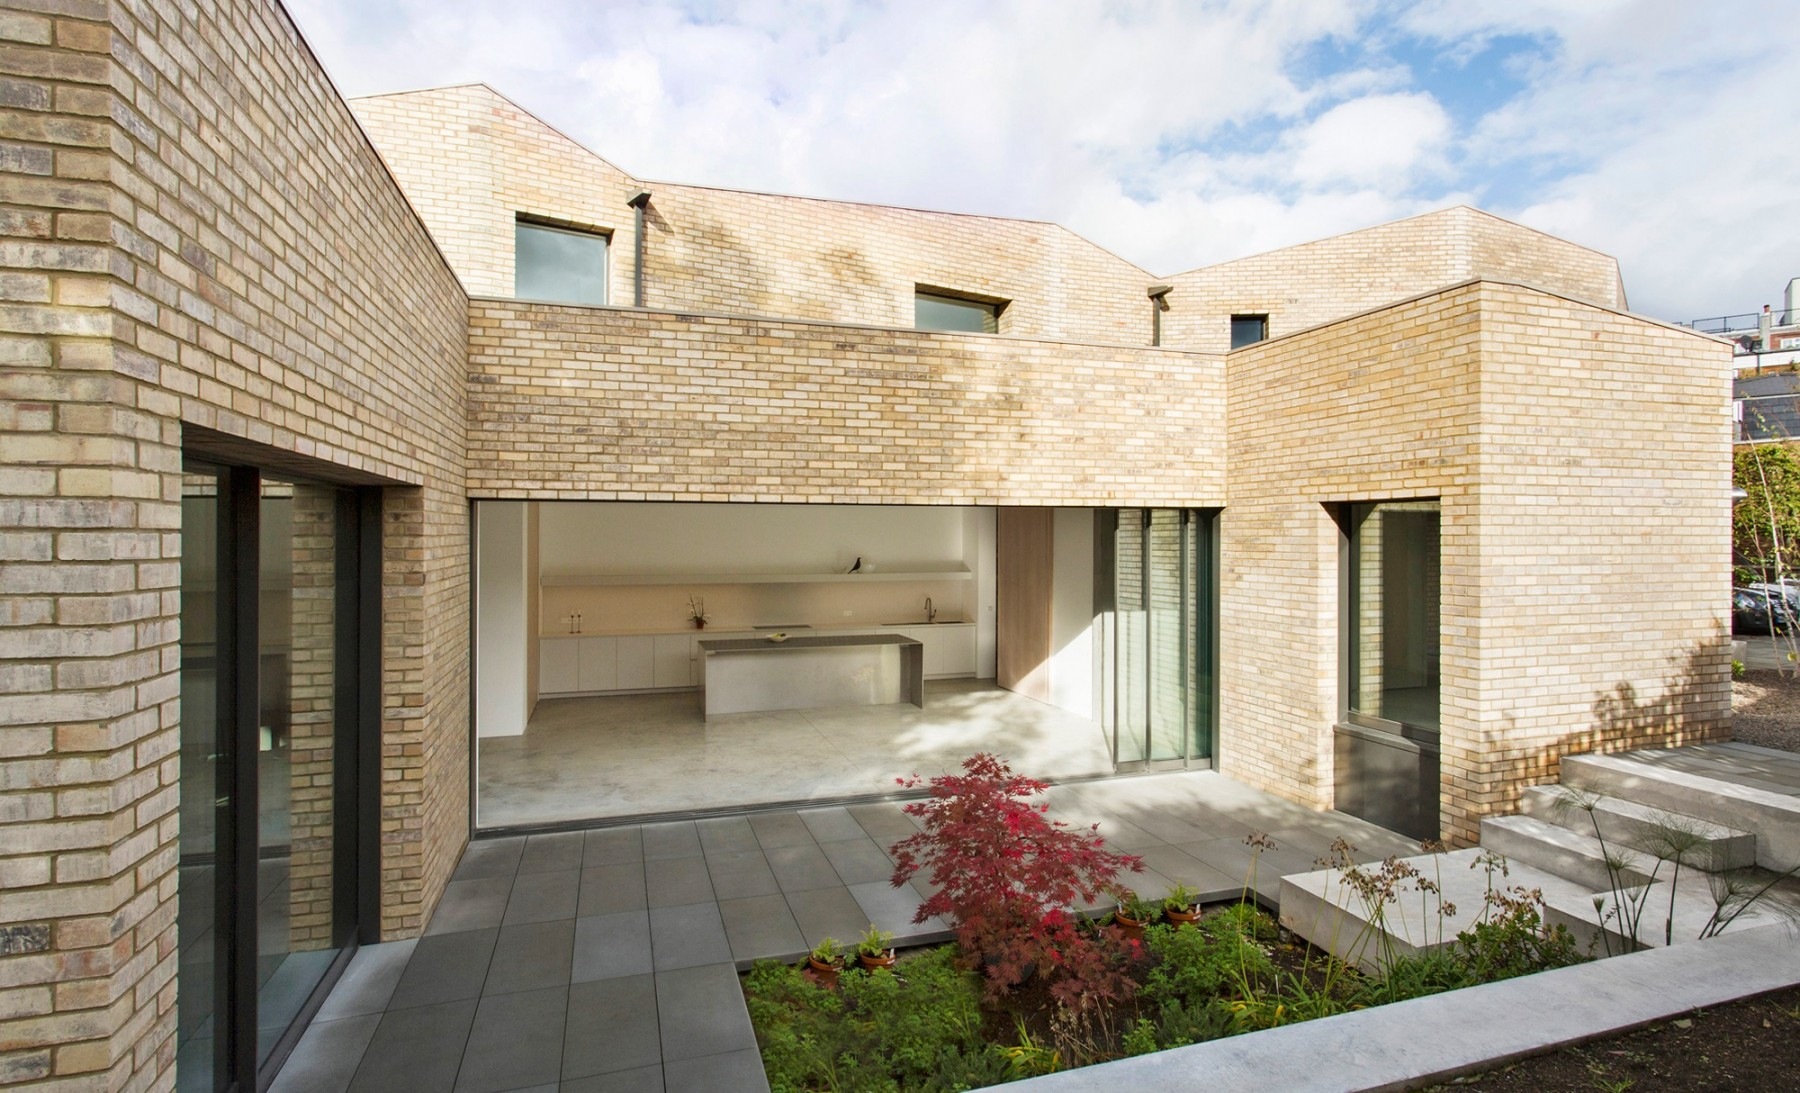 Luker-House-contemporary-modern-London-residential-home-Jamie-Fobert-Architects-homepage-2